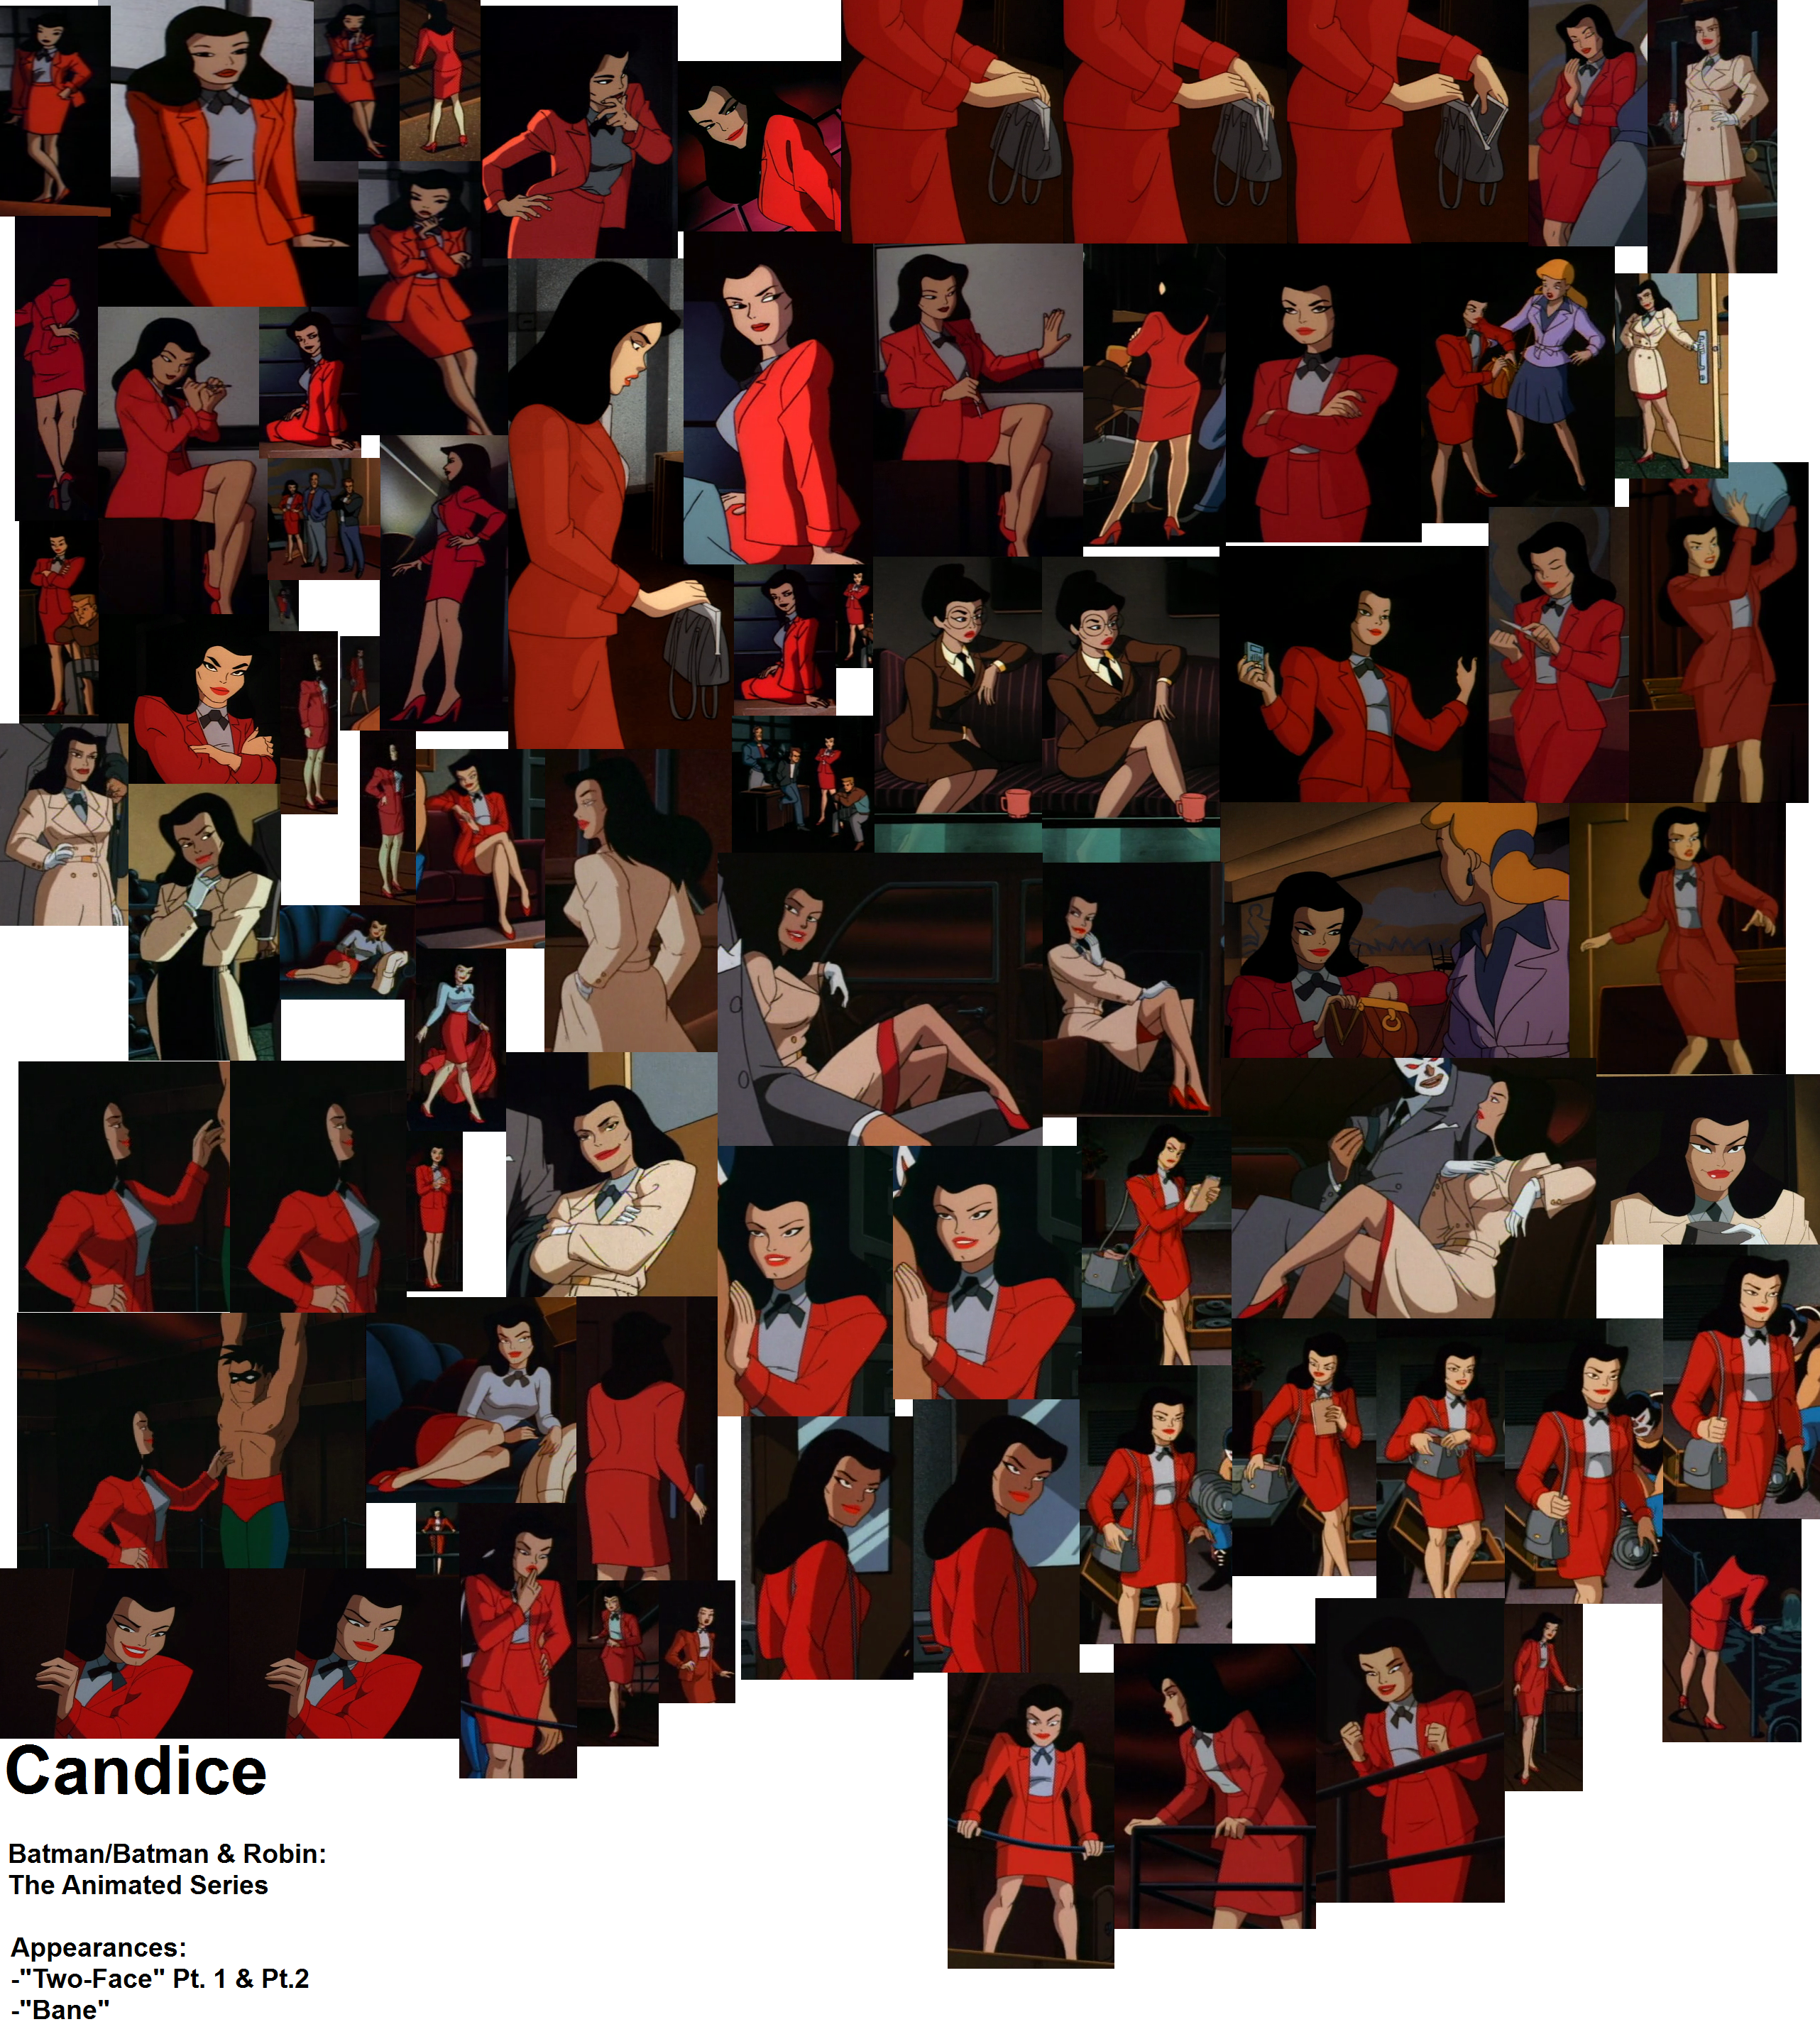 candice_collage_by_dukeydukeydoo_d8nh7gw.png